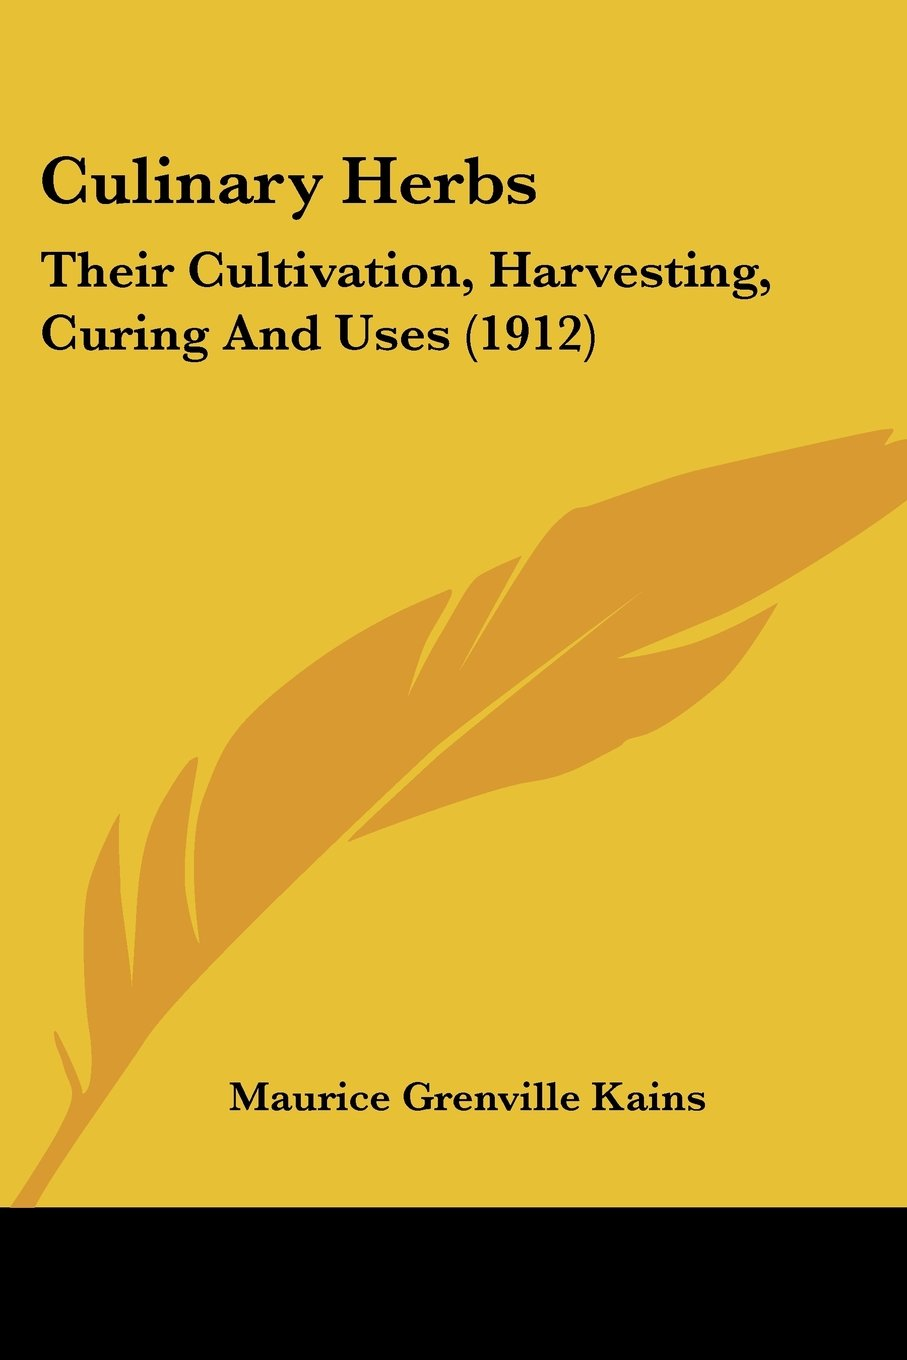 Read Online Culinary Herbs: Their Cultivation, Harvesting, Curing And Uses (1912) PDF